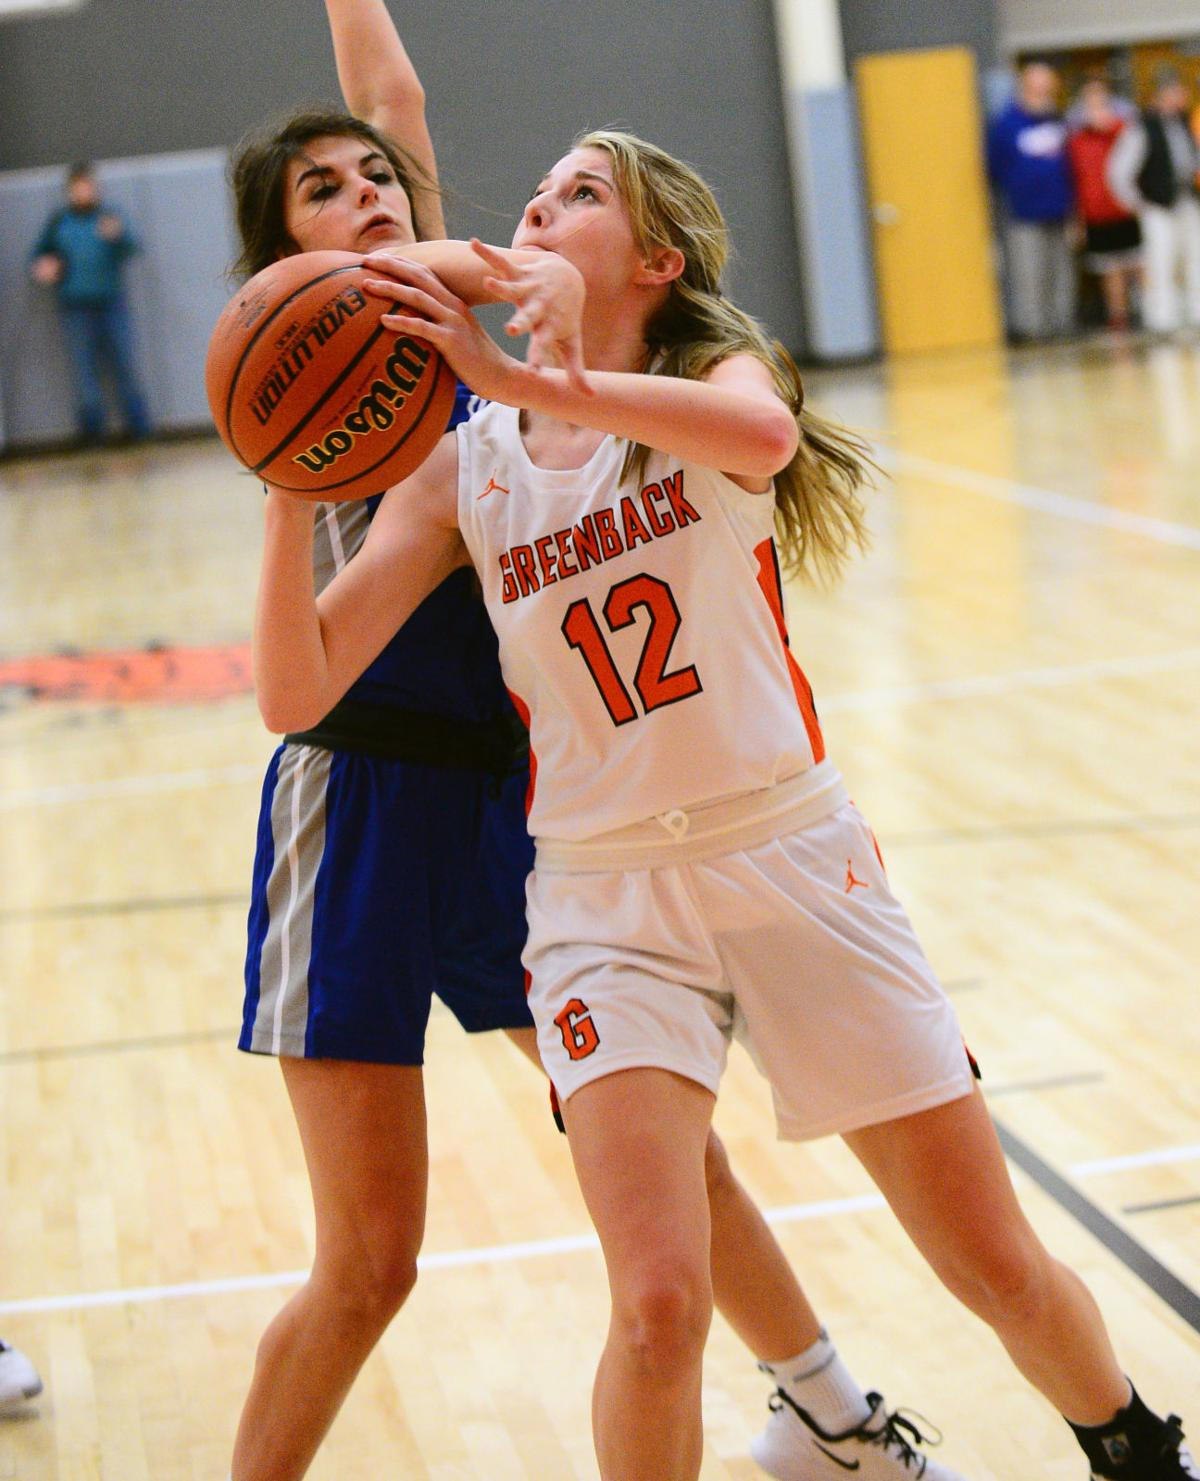 Greenback teams split against Jellico